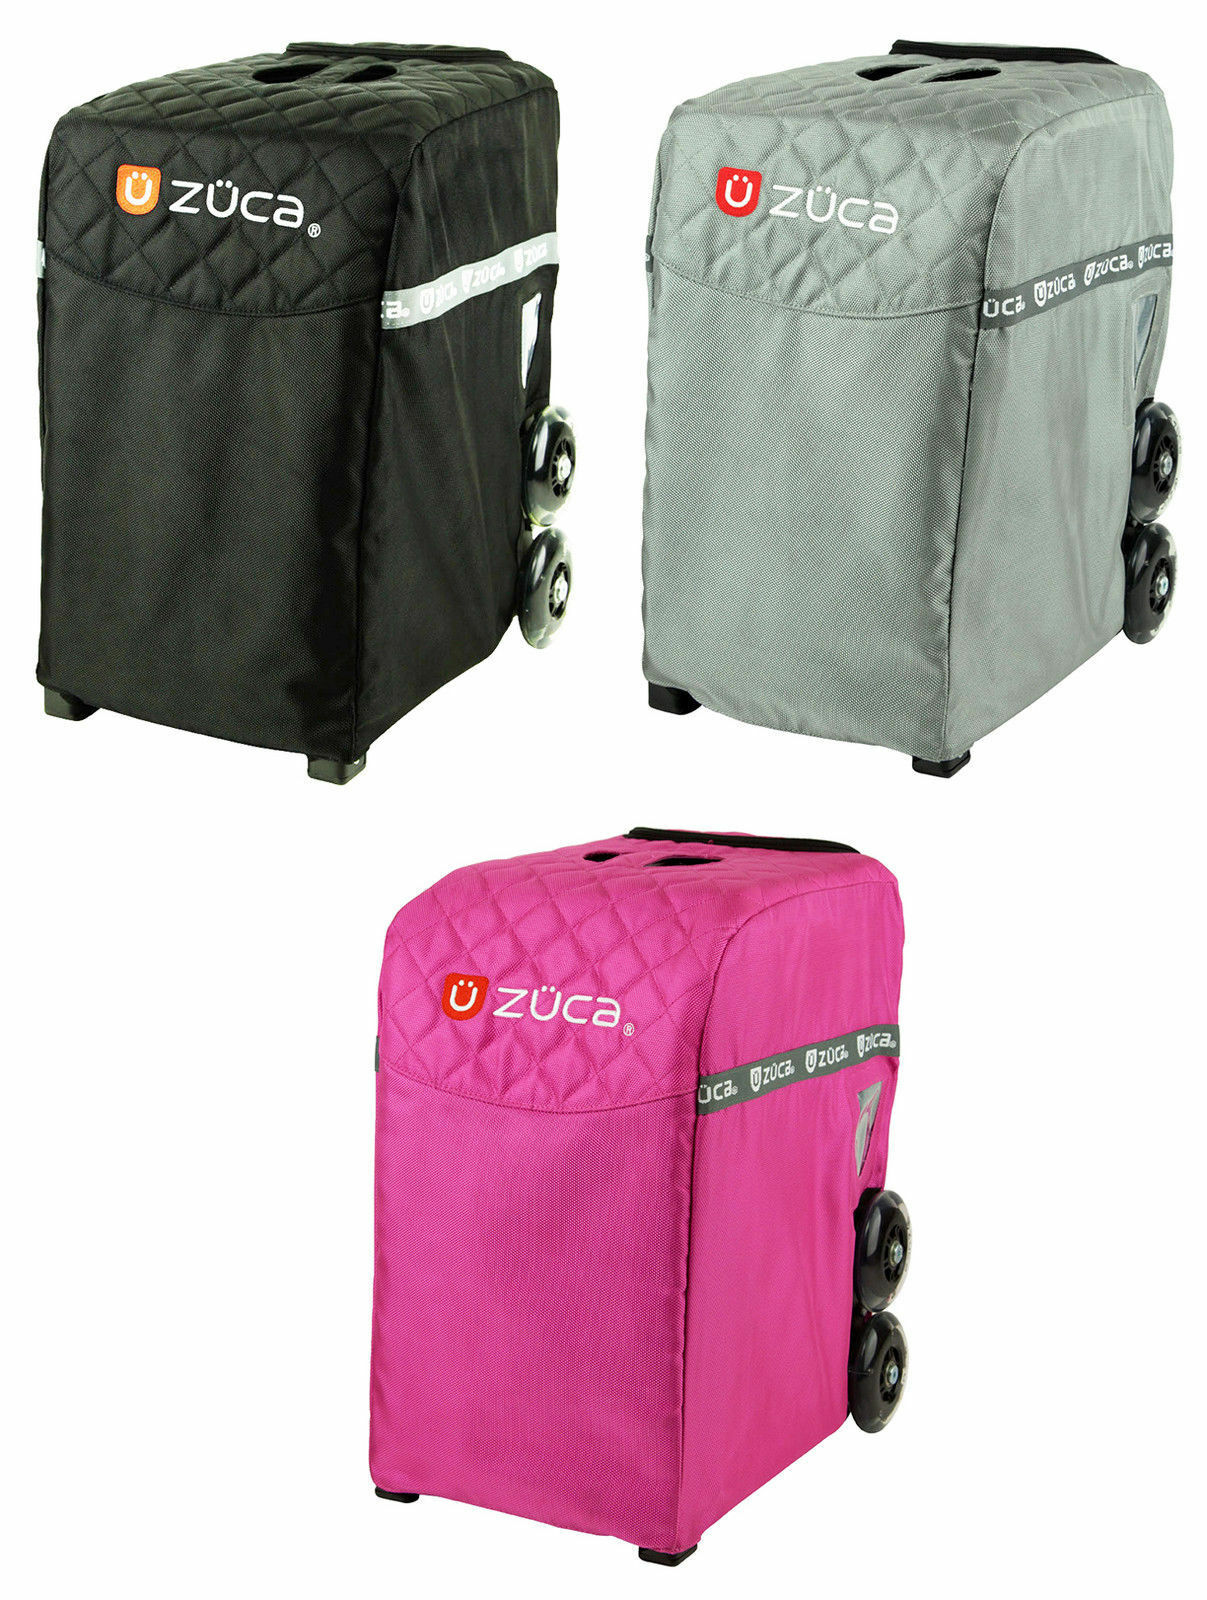 ZUCA Sports TRAVEL COVER New New New - ANY Farbe - No bag included. ad1169